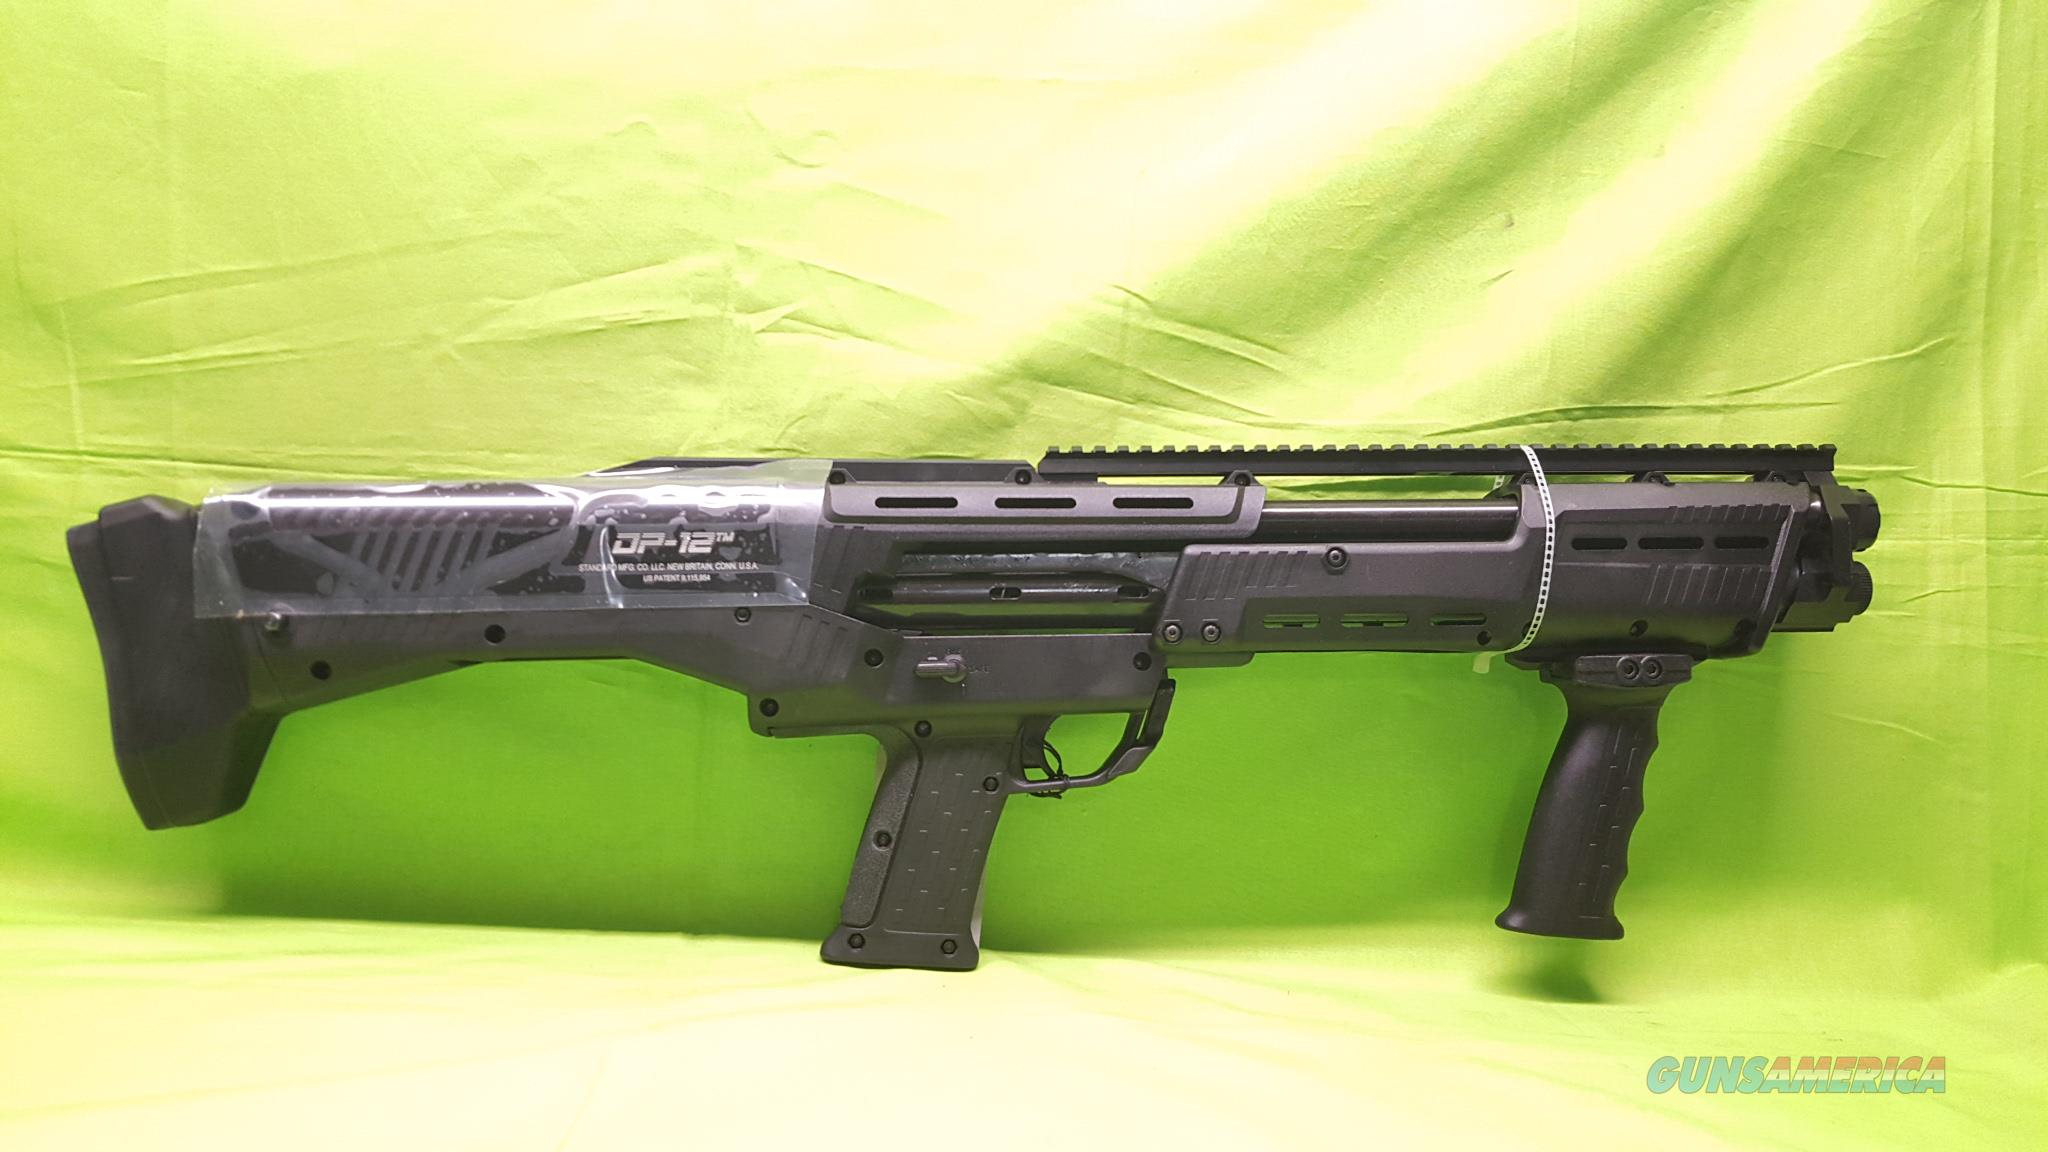 STD MFG DP12 DP 12 DP-12 12GA BLACK SHOTGUN 14+2  Guns > Shotguns > Kel-Tec Shotguns > KSG